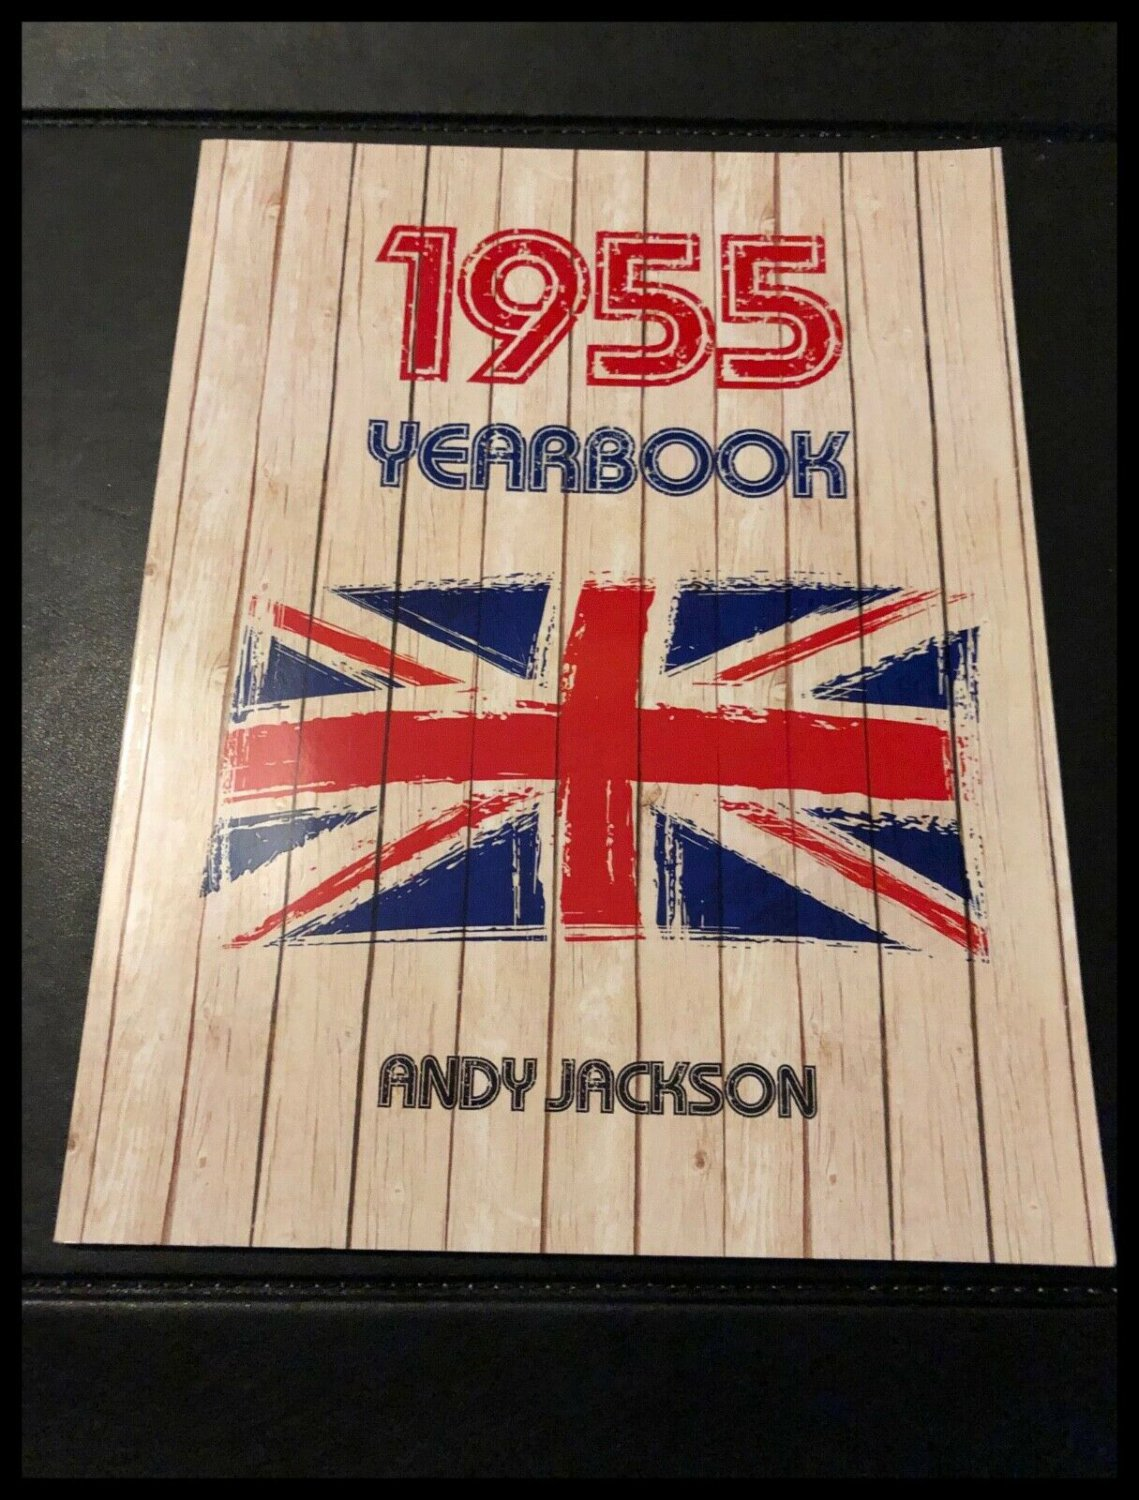 1955 Yearbook by Andy Jackson (Paperback Book 2015) Published in the UK